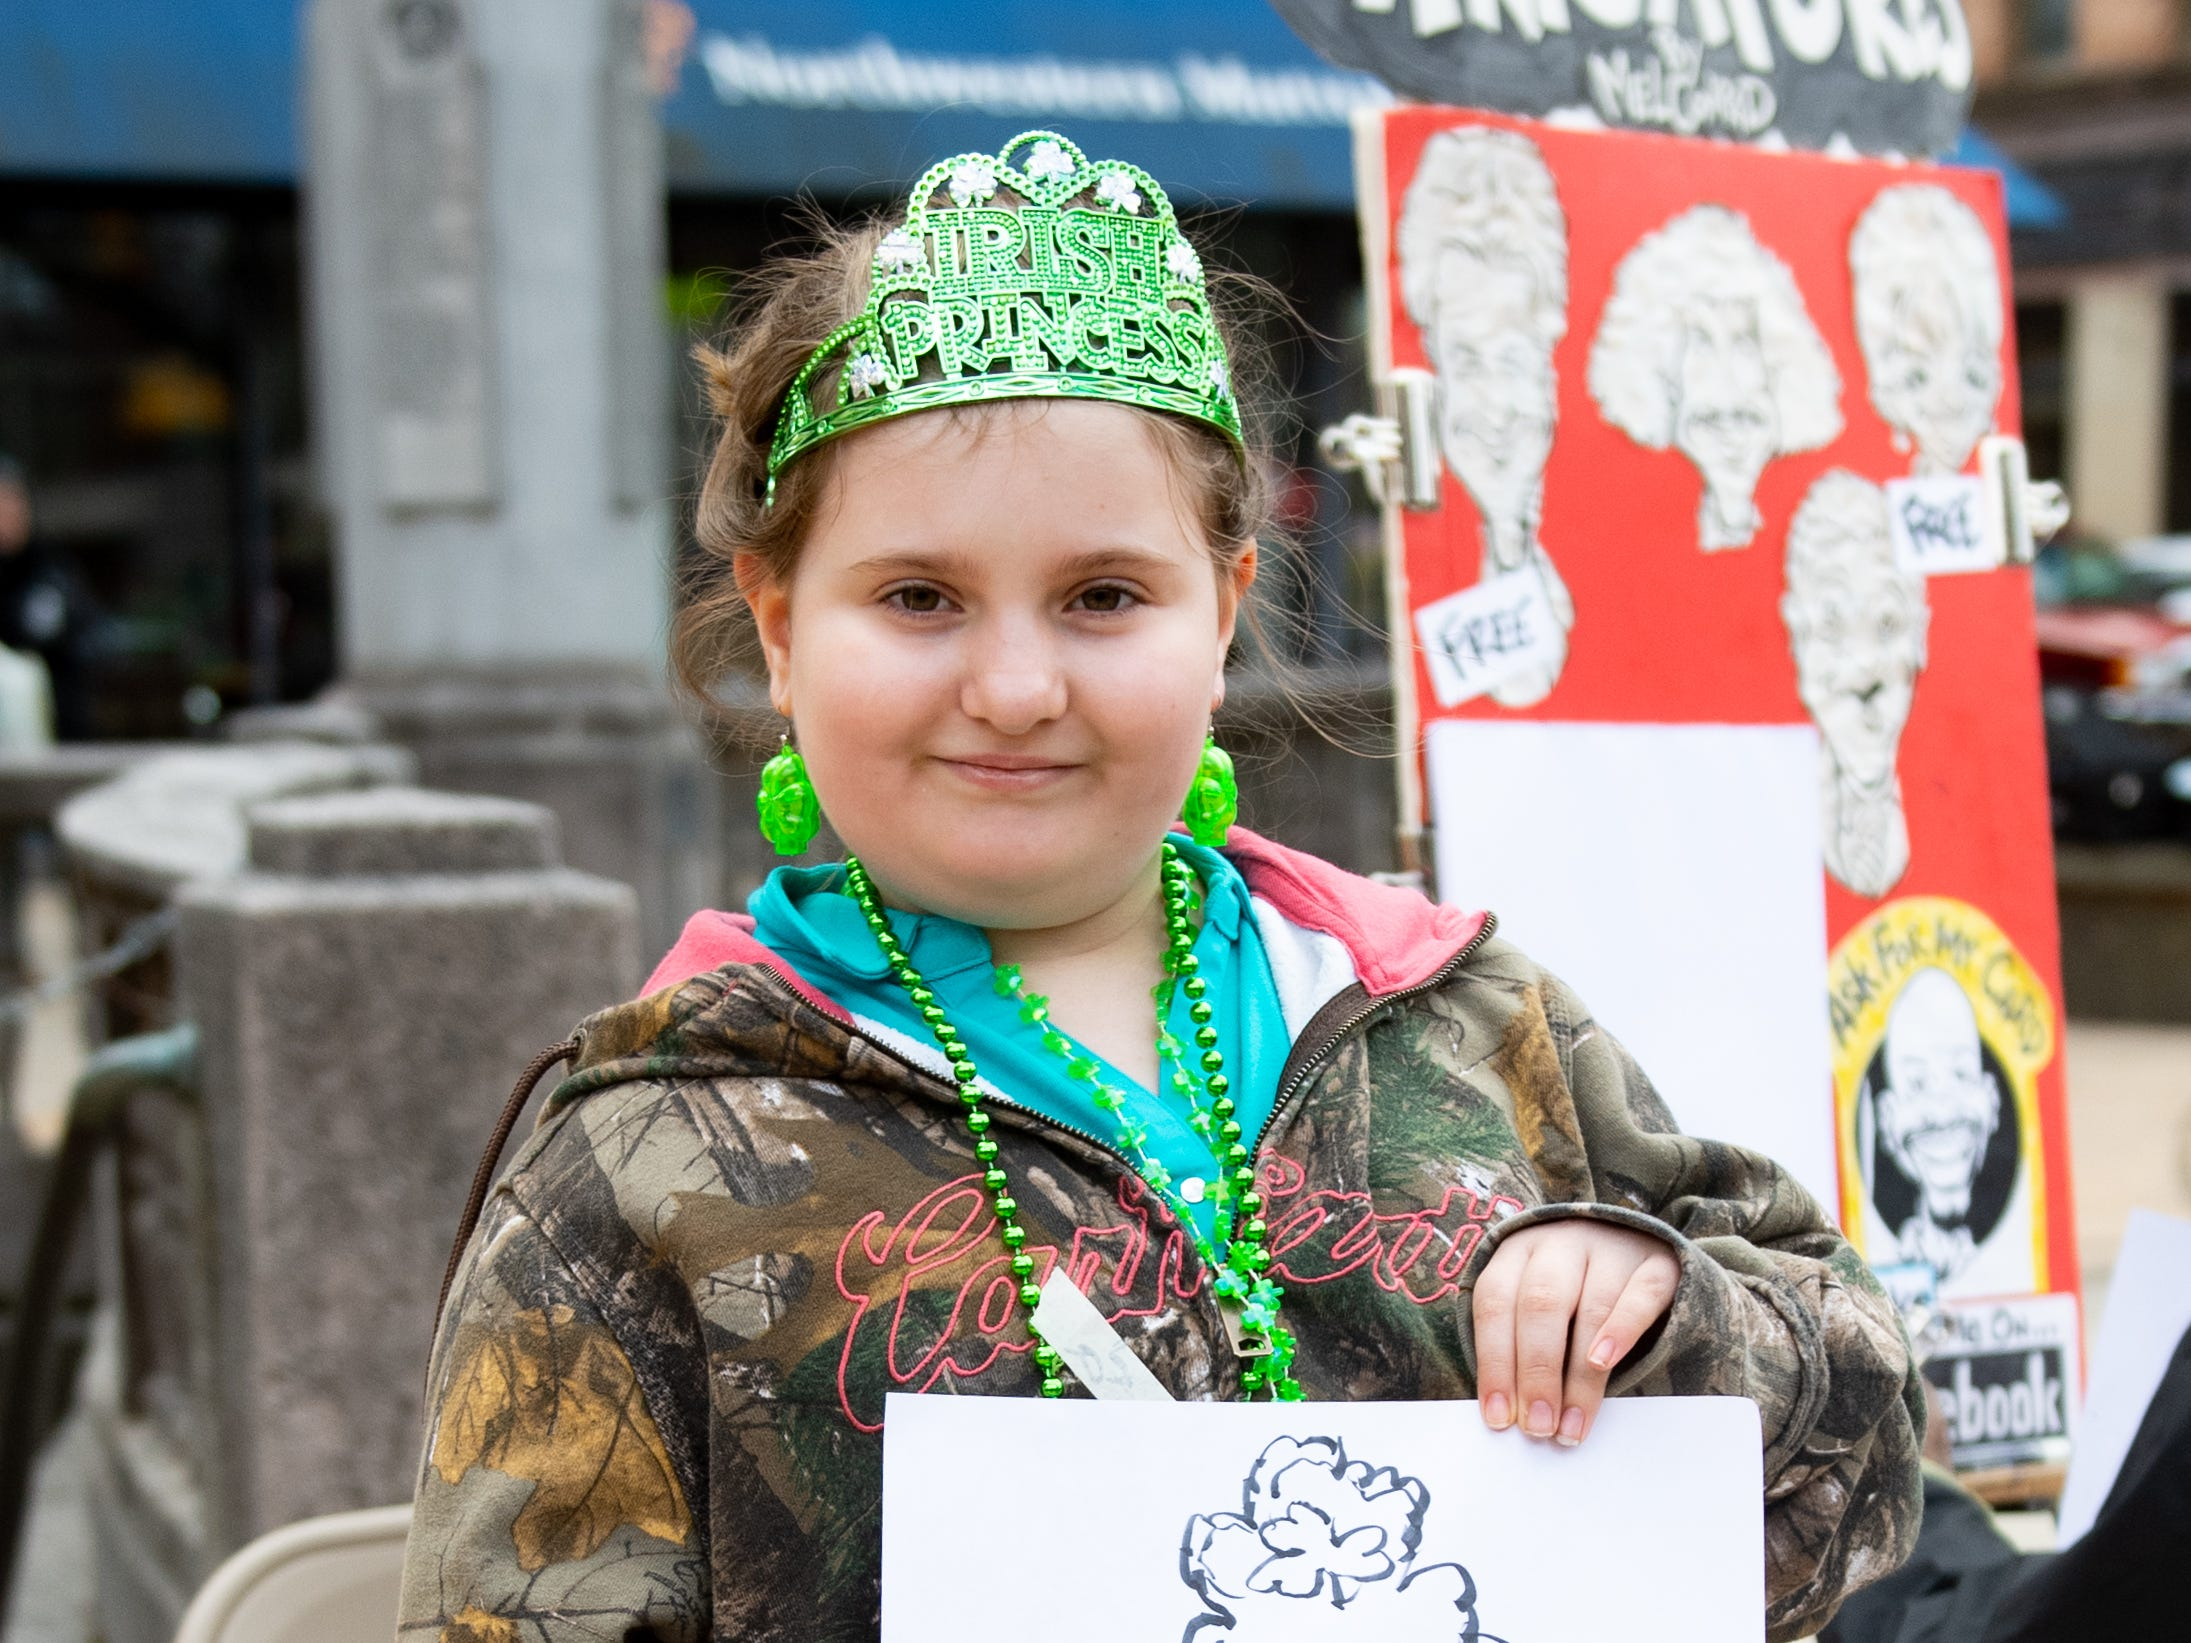 Jaylee Biller of Manchester Township is proud of her caricature during the St. Patrick's Day Parade, March 16, 2019.